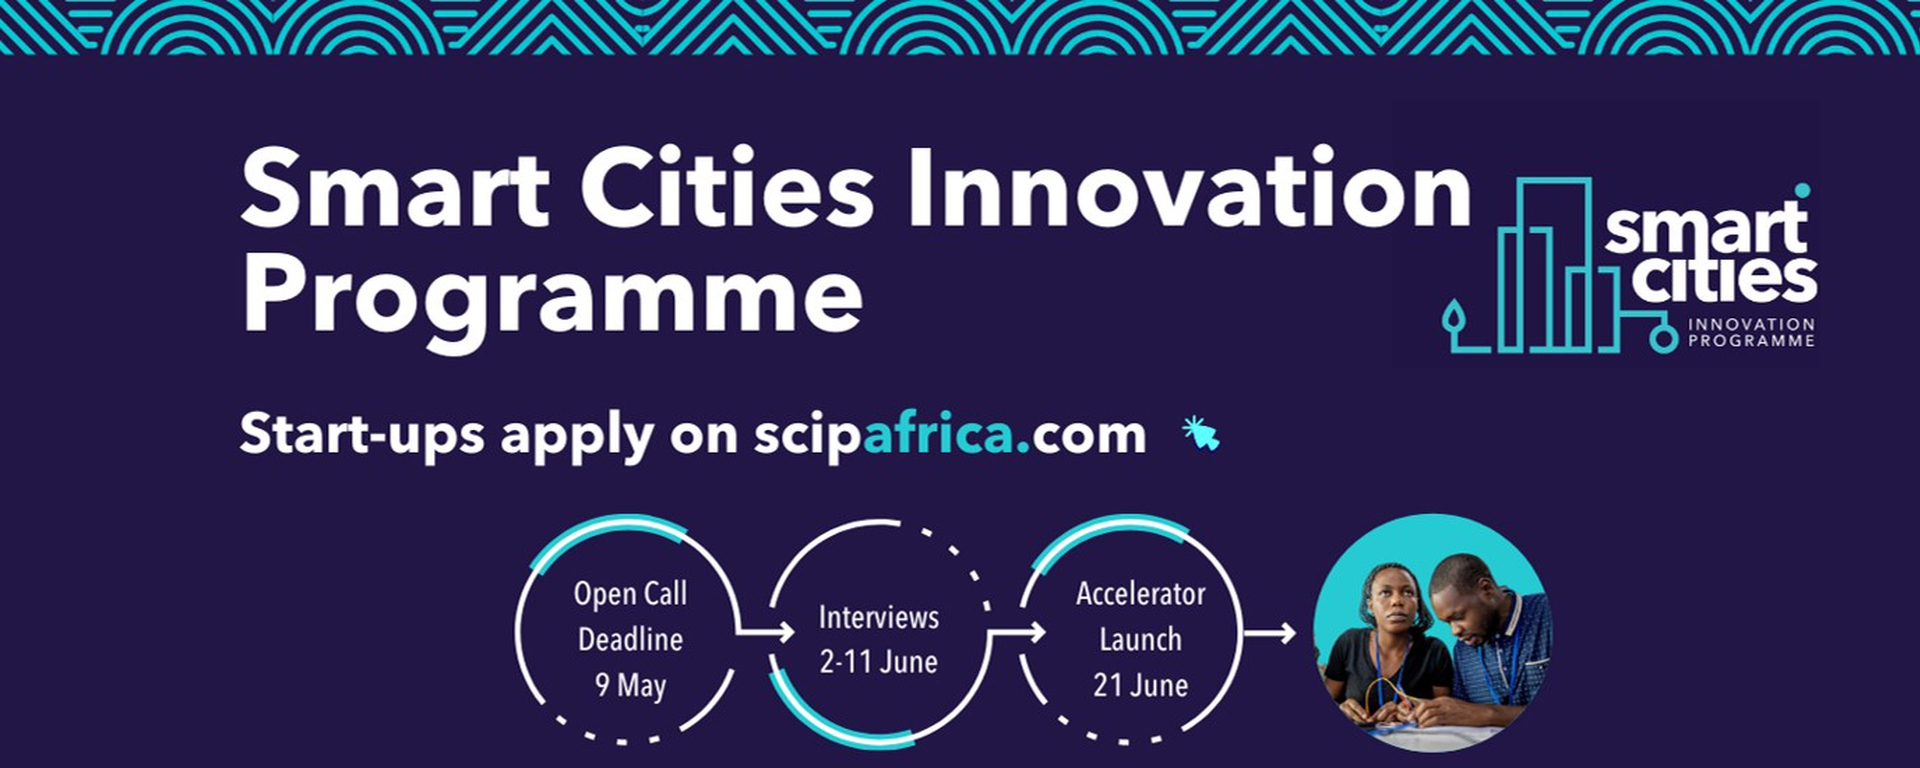 Make-IT in Africa - The Smart Cities Innovation Programme Movemeback African initiative cover image